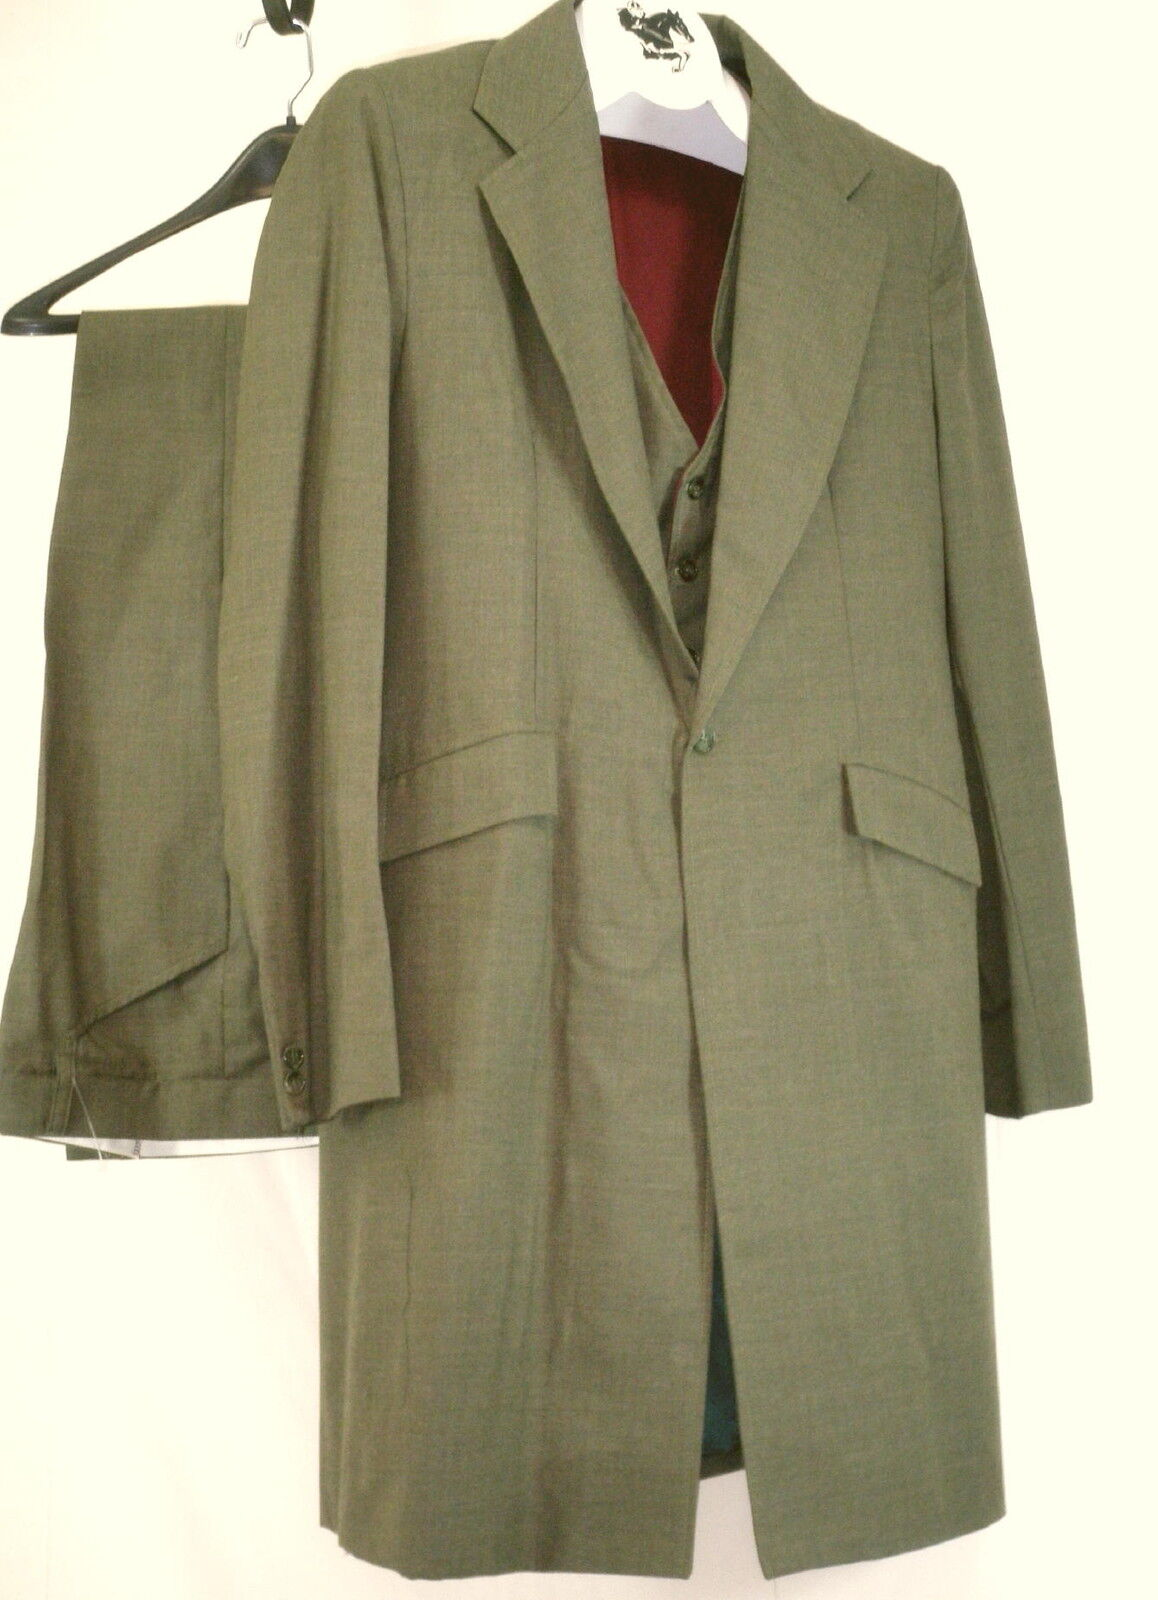 Reed Hill uomini Saddleseat 3 Pc Suit Olive Wool Blend 46  USA